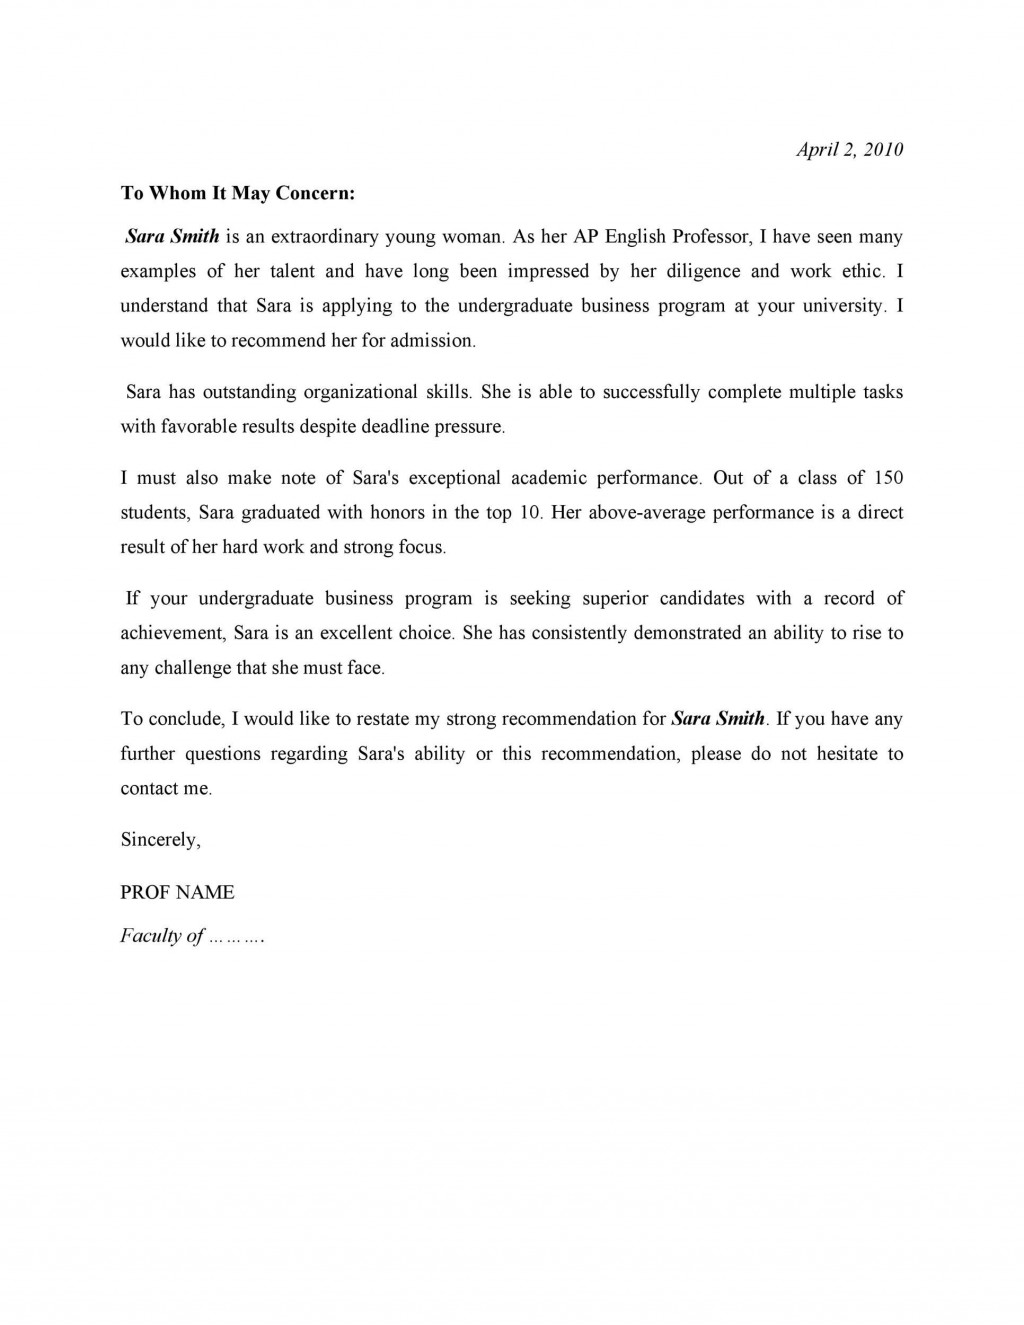 006 Frightening Letter Of Recommendation Template For College Student Image  Sample From ProfessorLarge